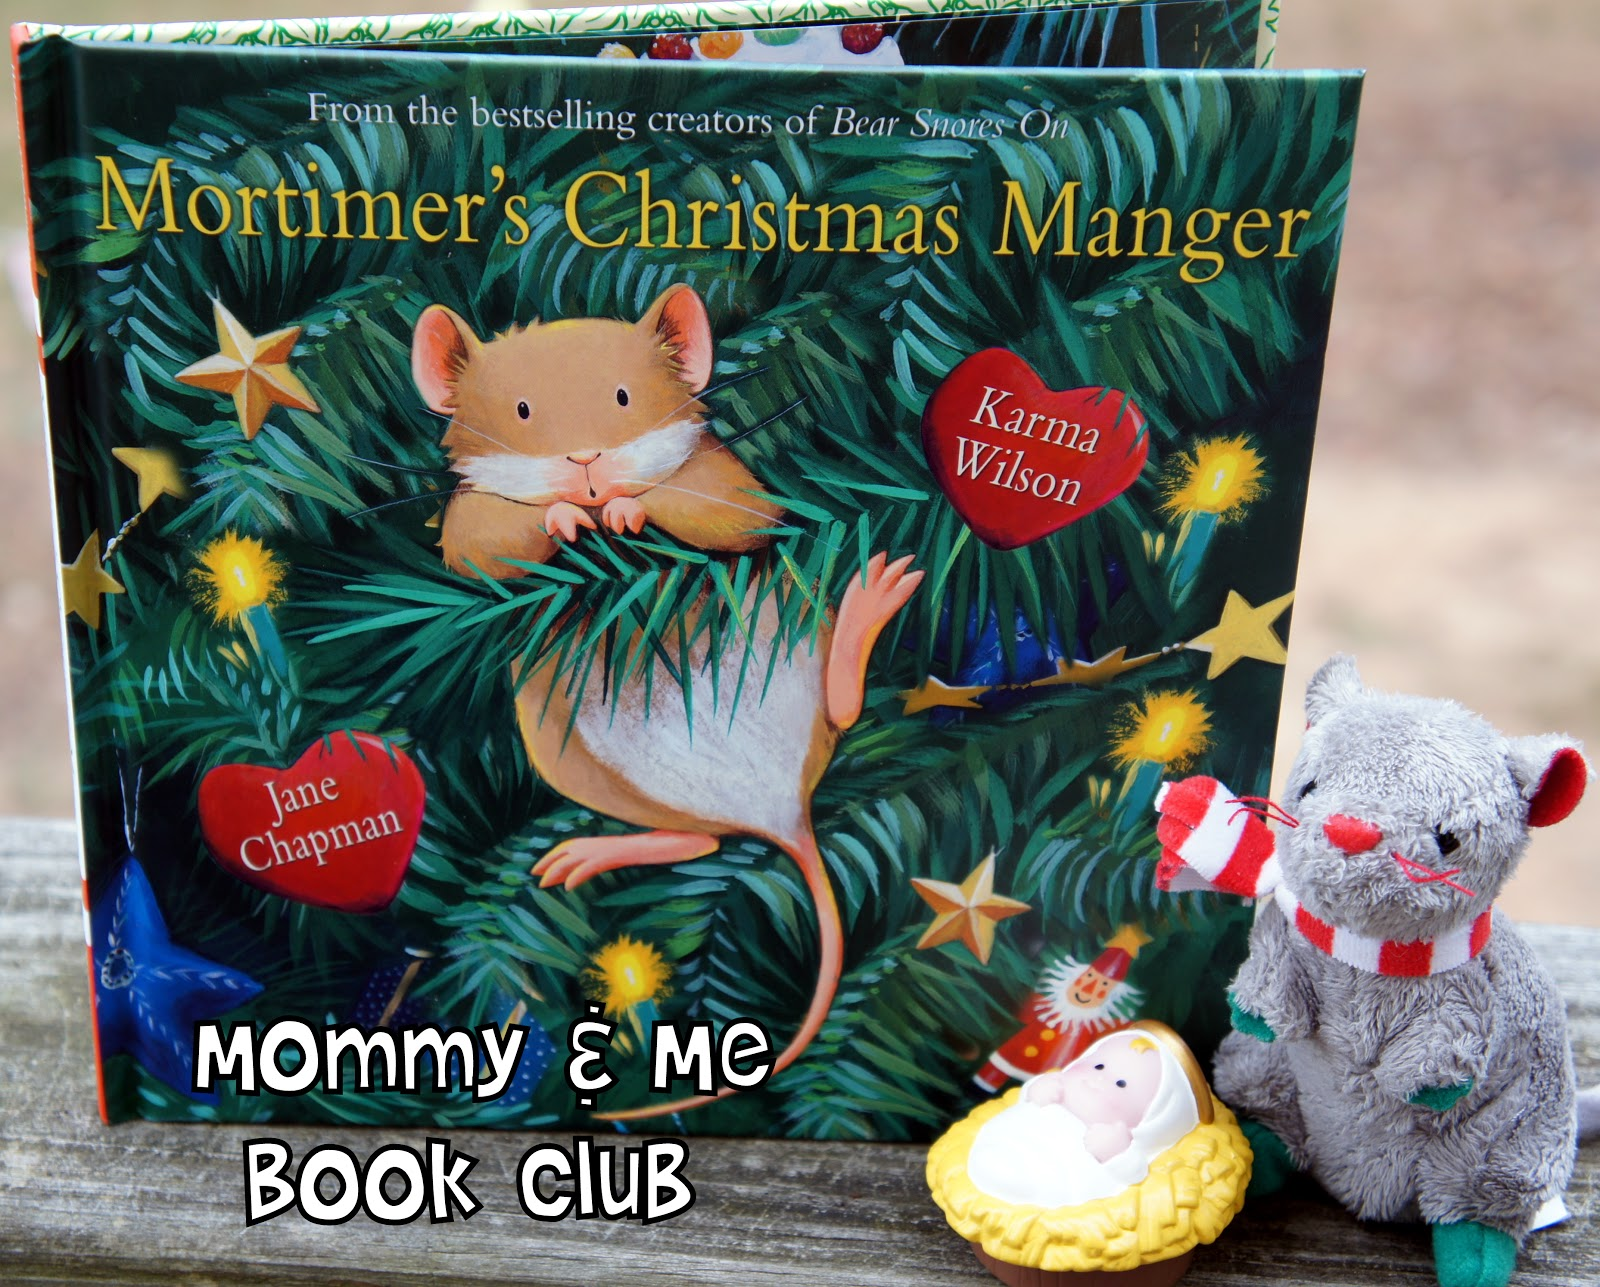 Book Club Christmas Party Ideas Part - 28: Mortimeru0027s Christmas Manger